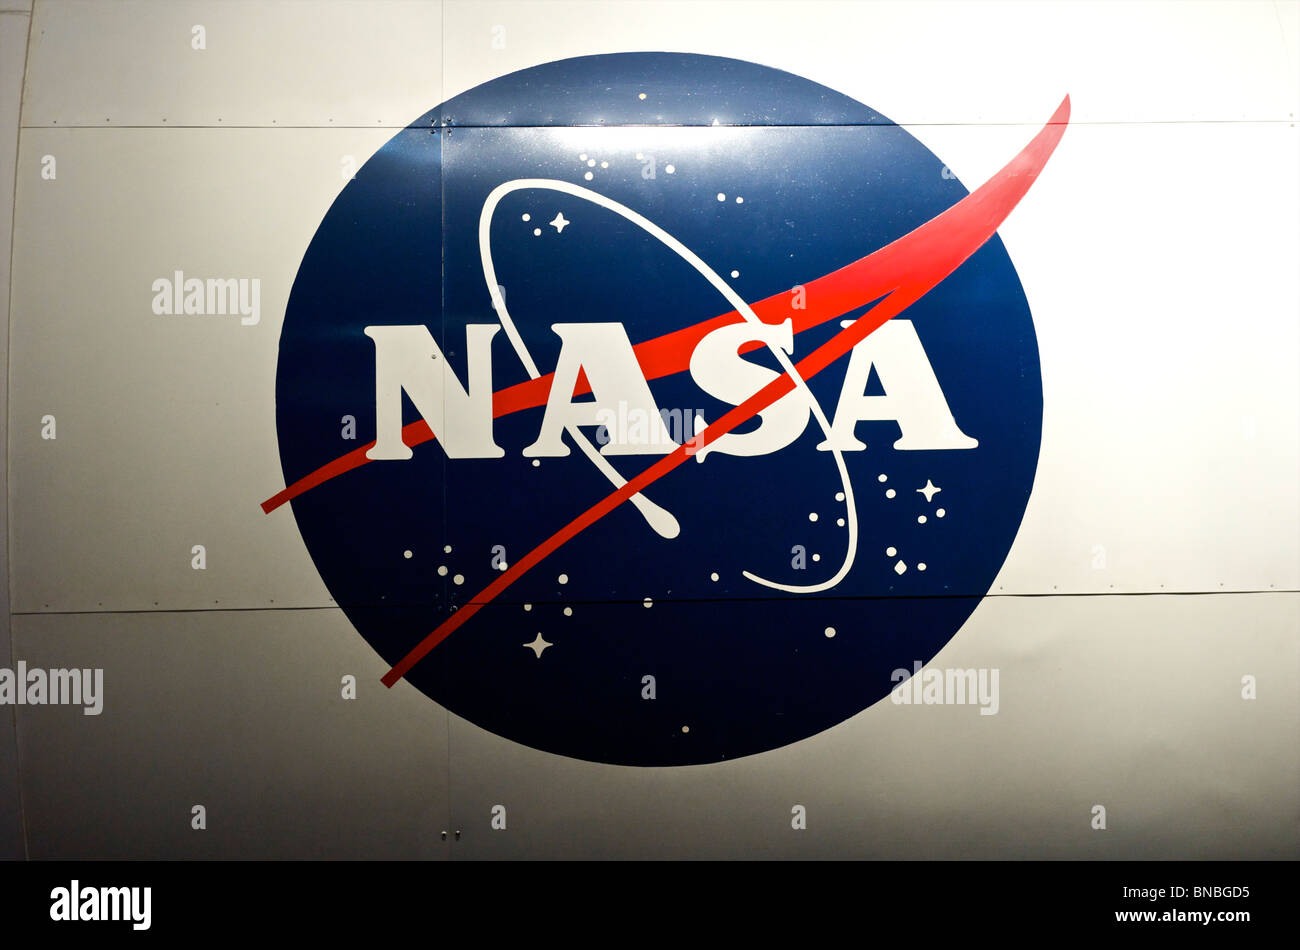 NASA logo on the Space Shuttle at space centre in Houston, Texas, North America, USA - Stock Image